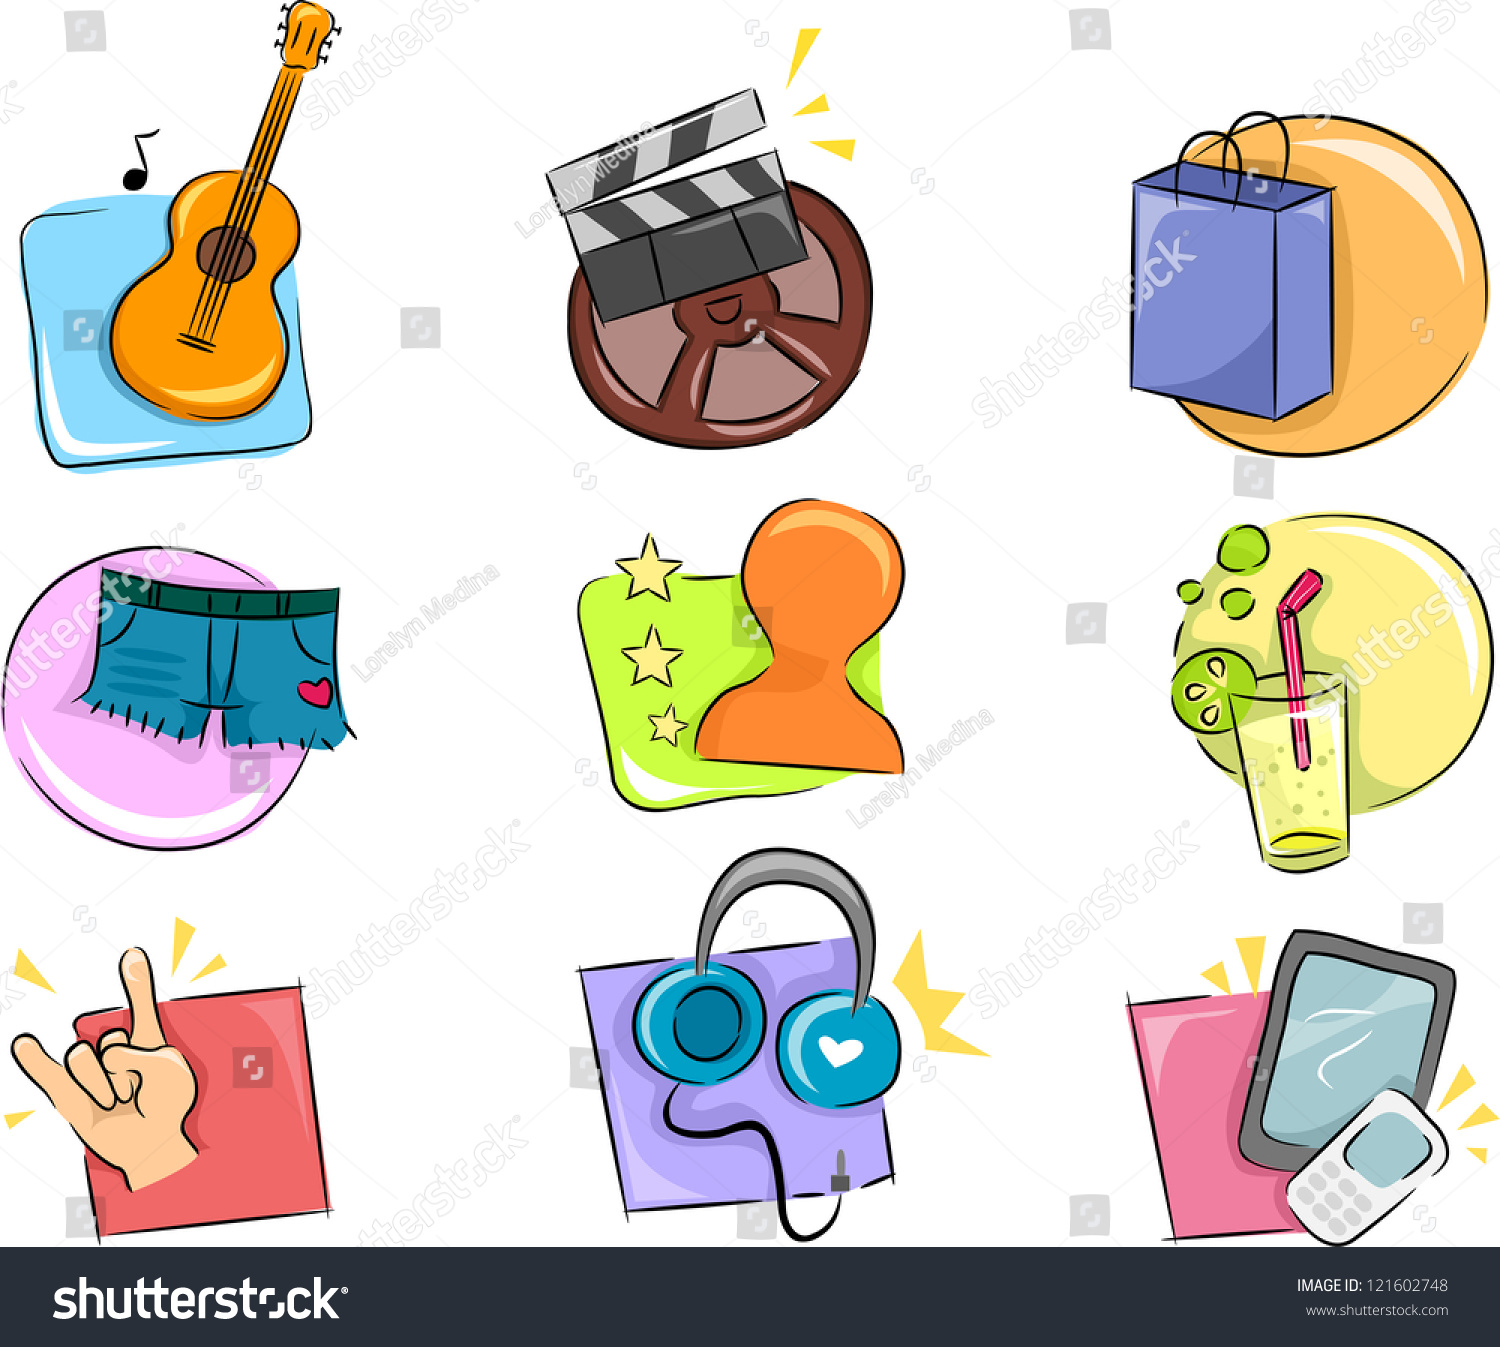 illustration different hobbies interests icon design stock vector illustration of different hobbies and interests icon design elements